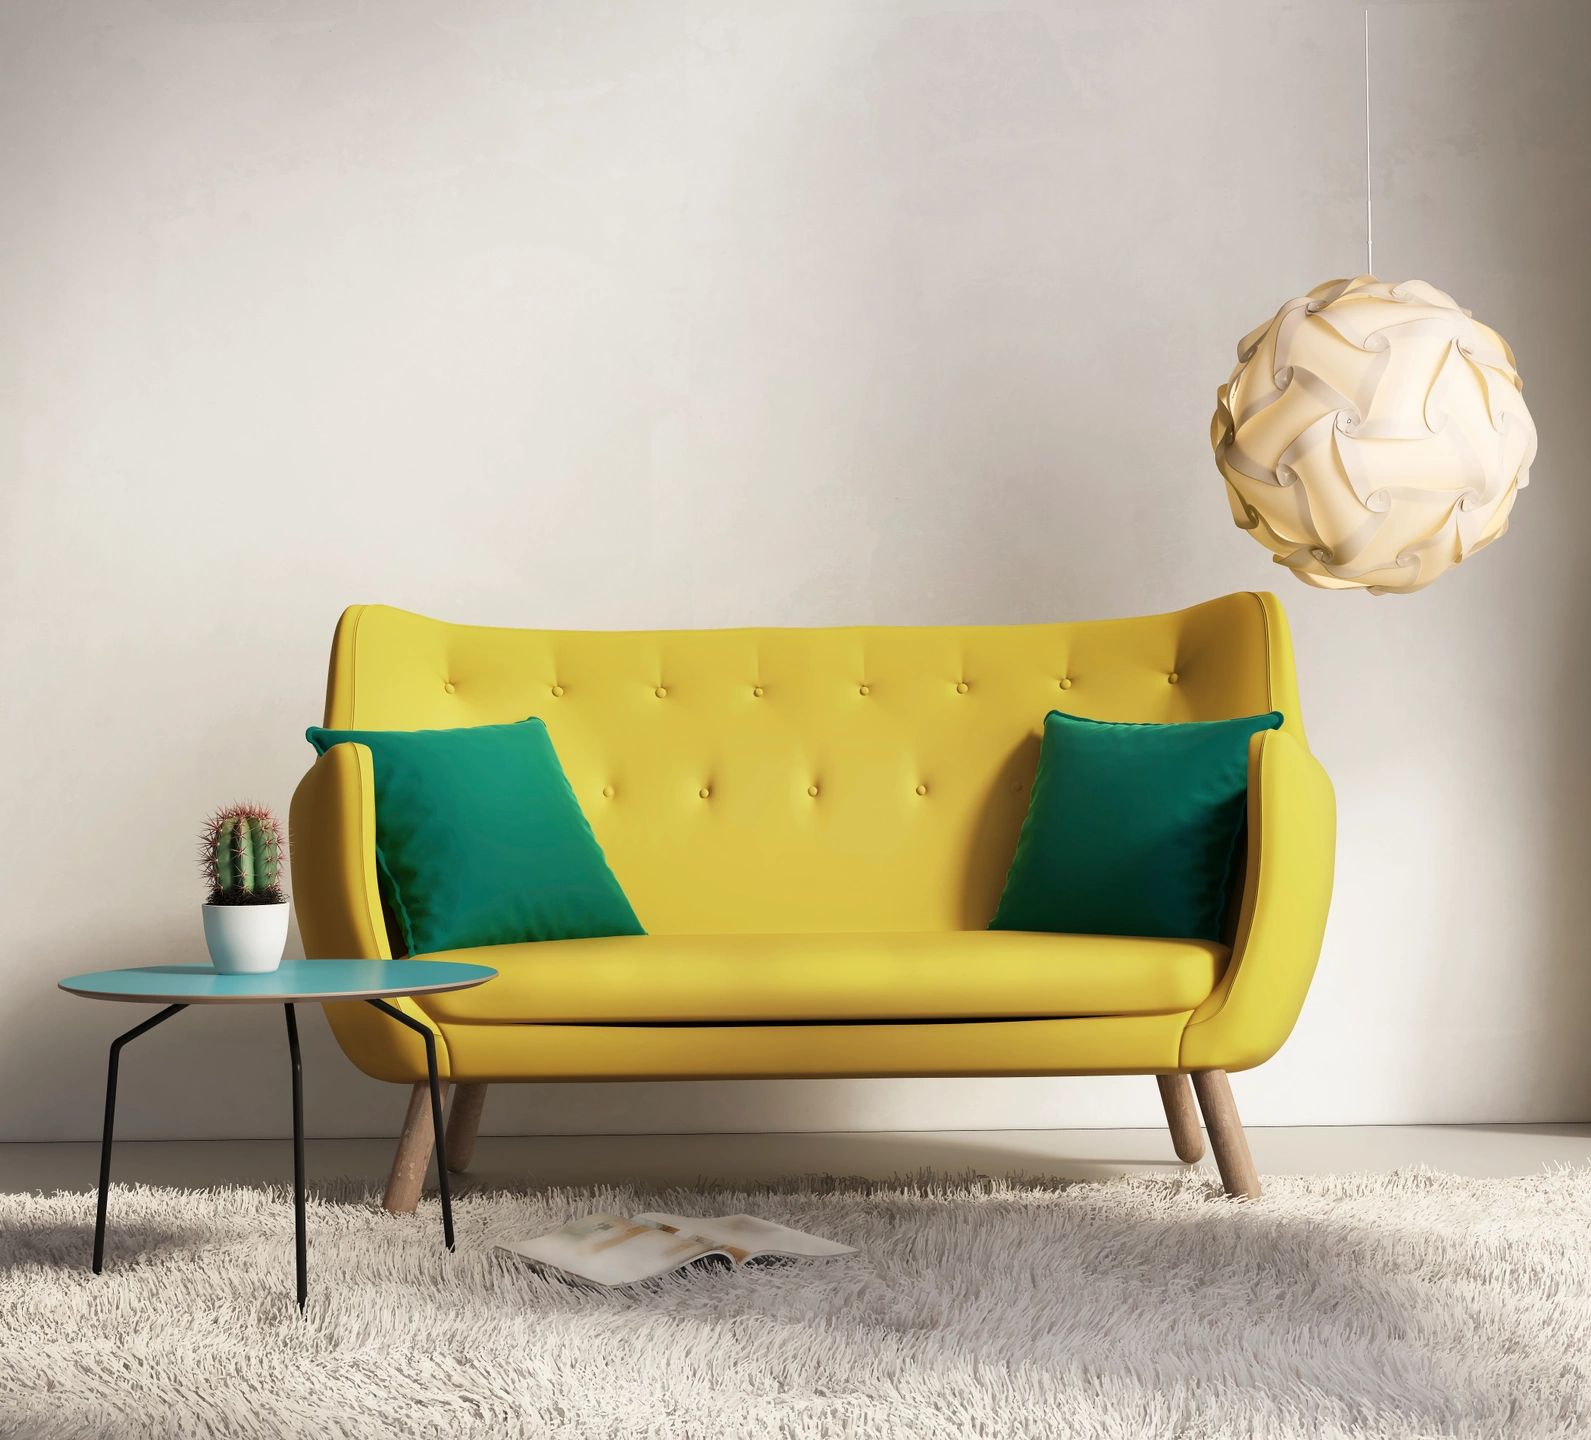 Cheapest Way To Ship Furniture